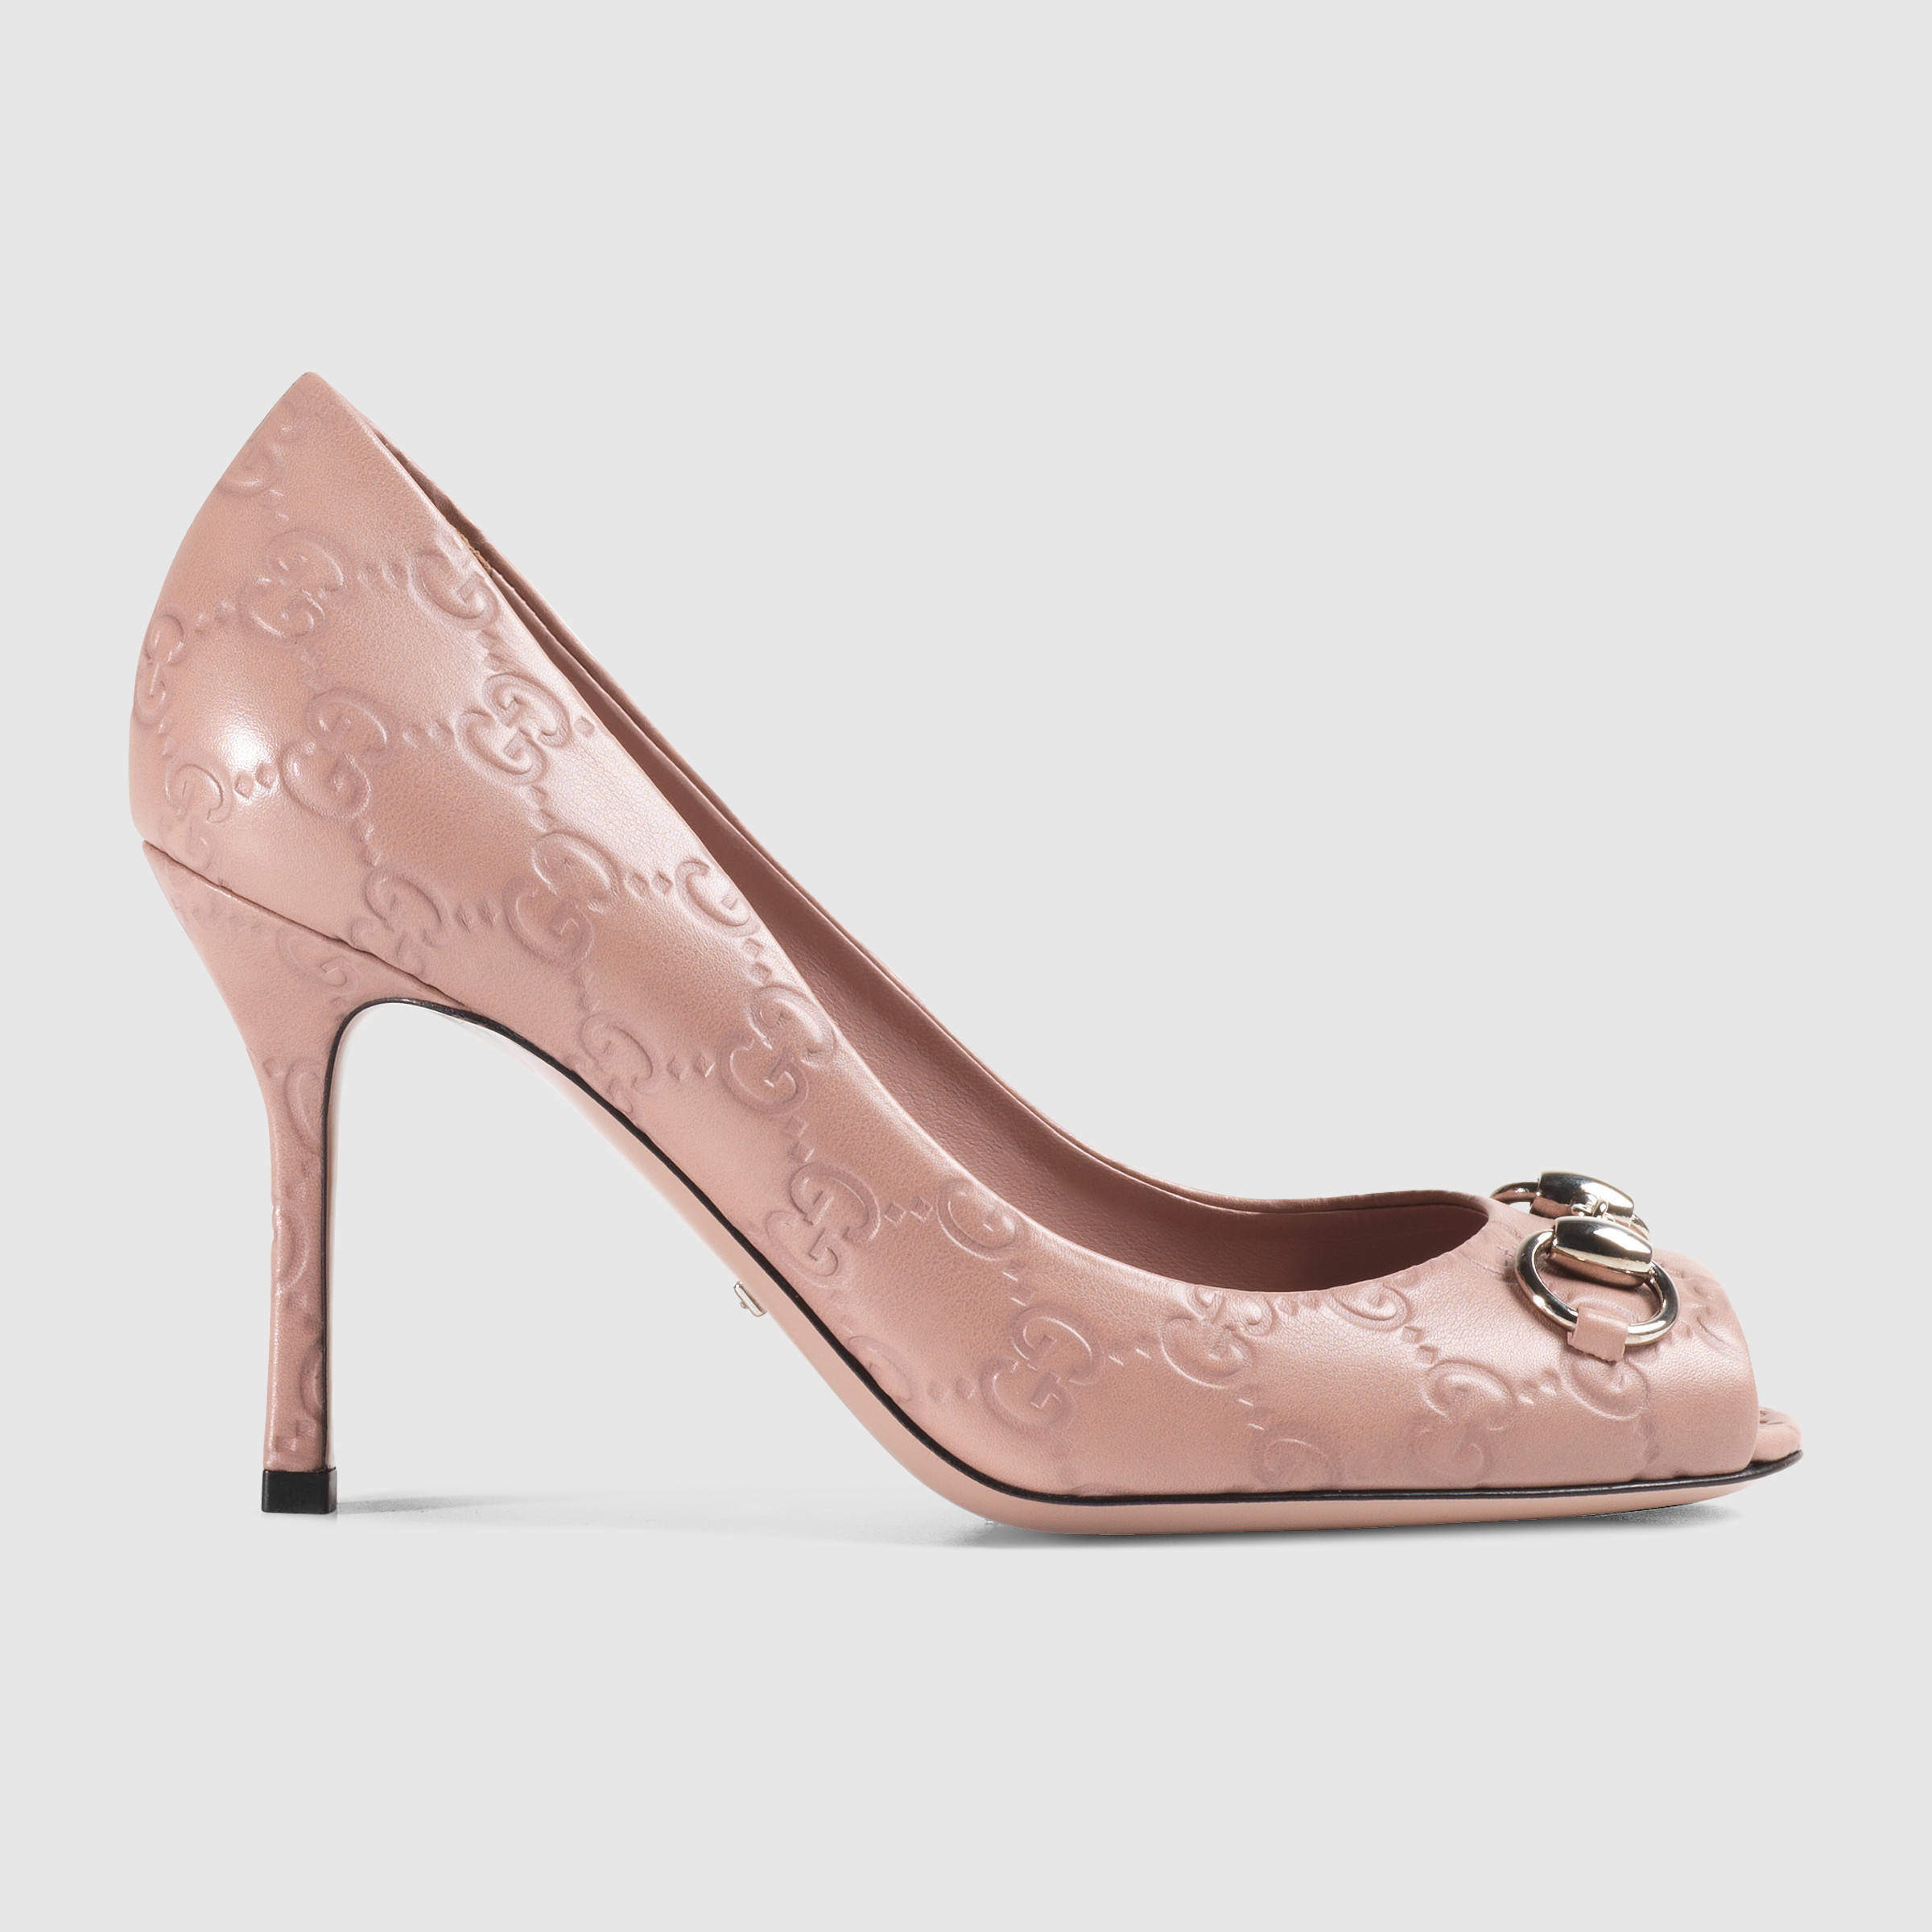 7dcf77275fe Gucci Jolene Ssima Leather Mid-heel Pump in Natural - Lyst